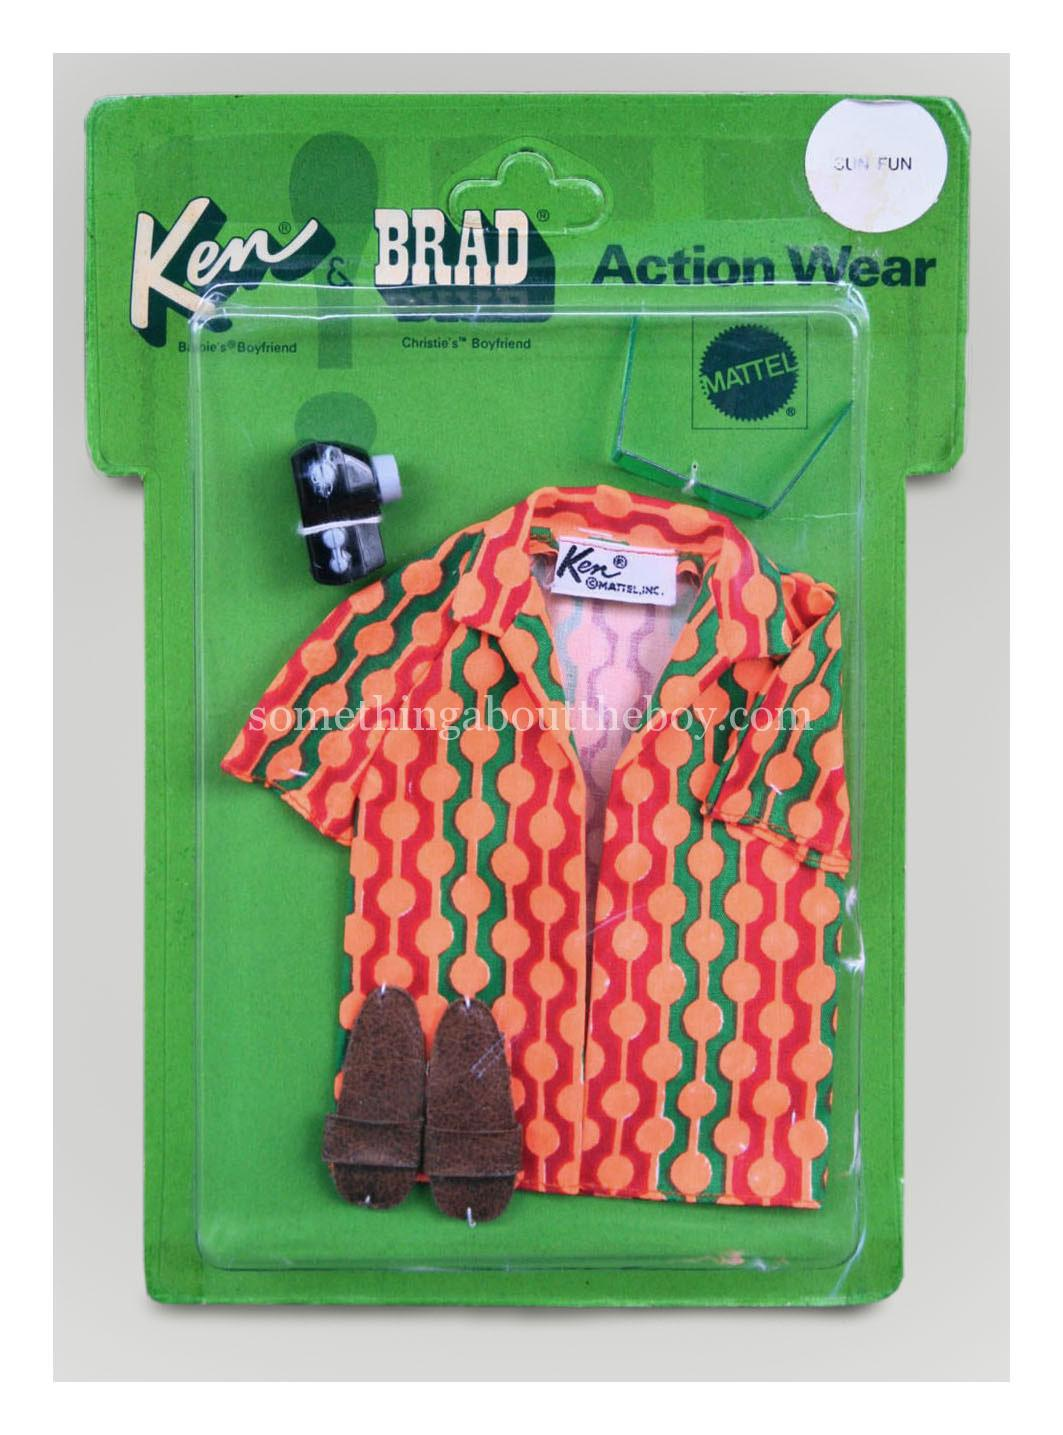 1971 Action Wear Sun Fun